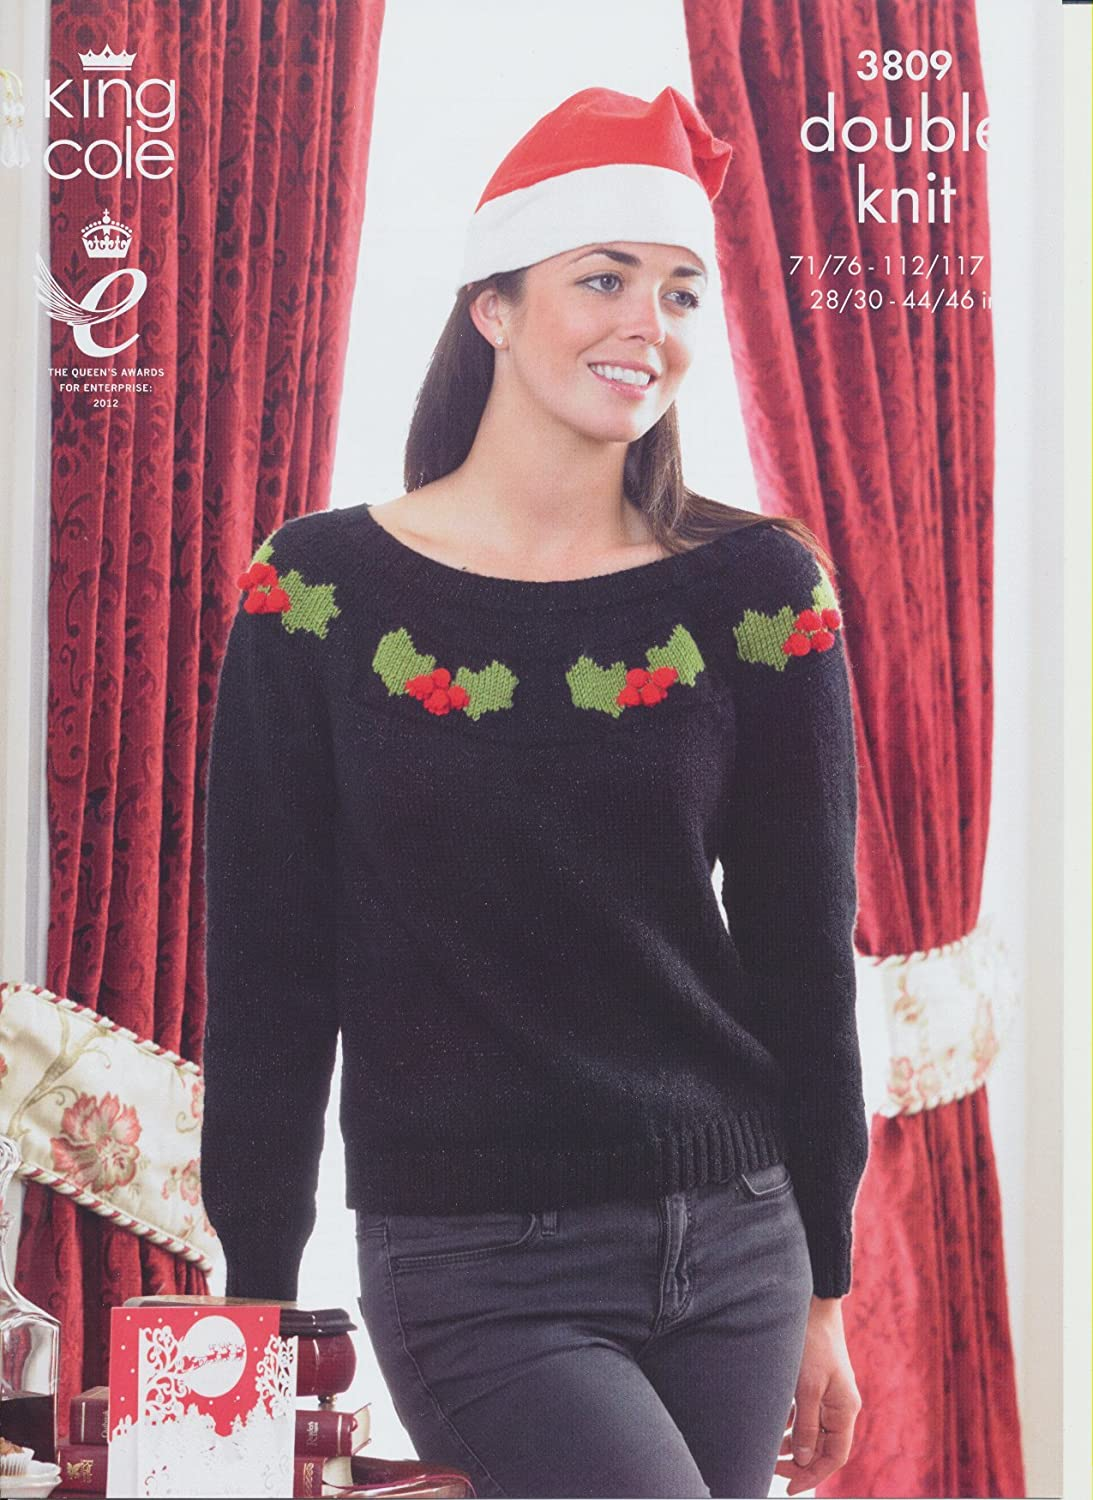 King Cole Ladies & Mens Double Knitting Pattern Womens Christmas Sweater Holly Candycane 3809